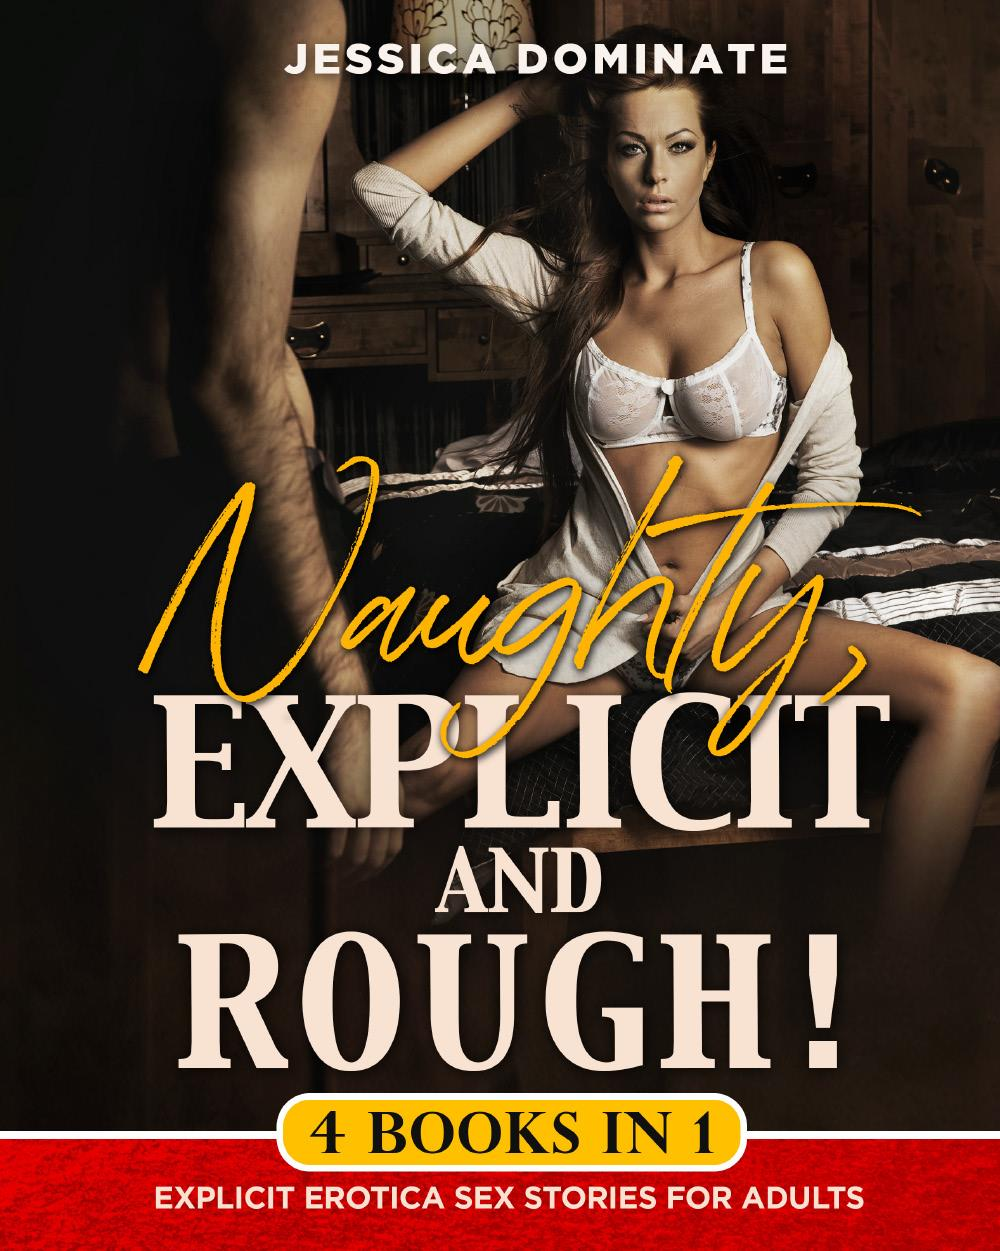 Naughty, Explicit and ROUGH! (4 Books in 1). Explicit Erotica Sex Stories for Adults